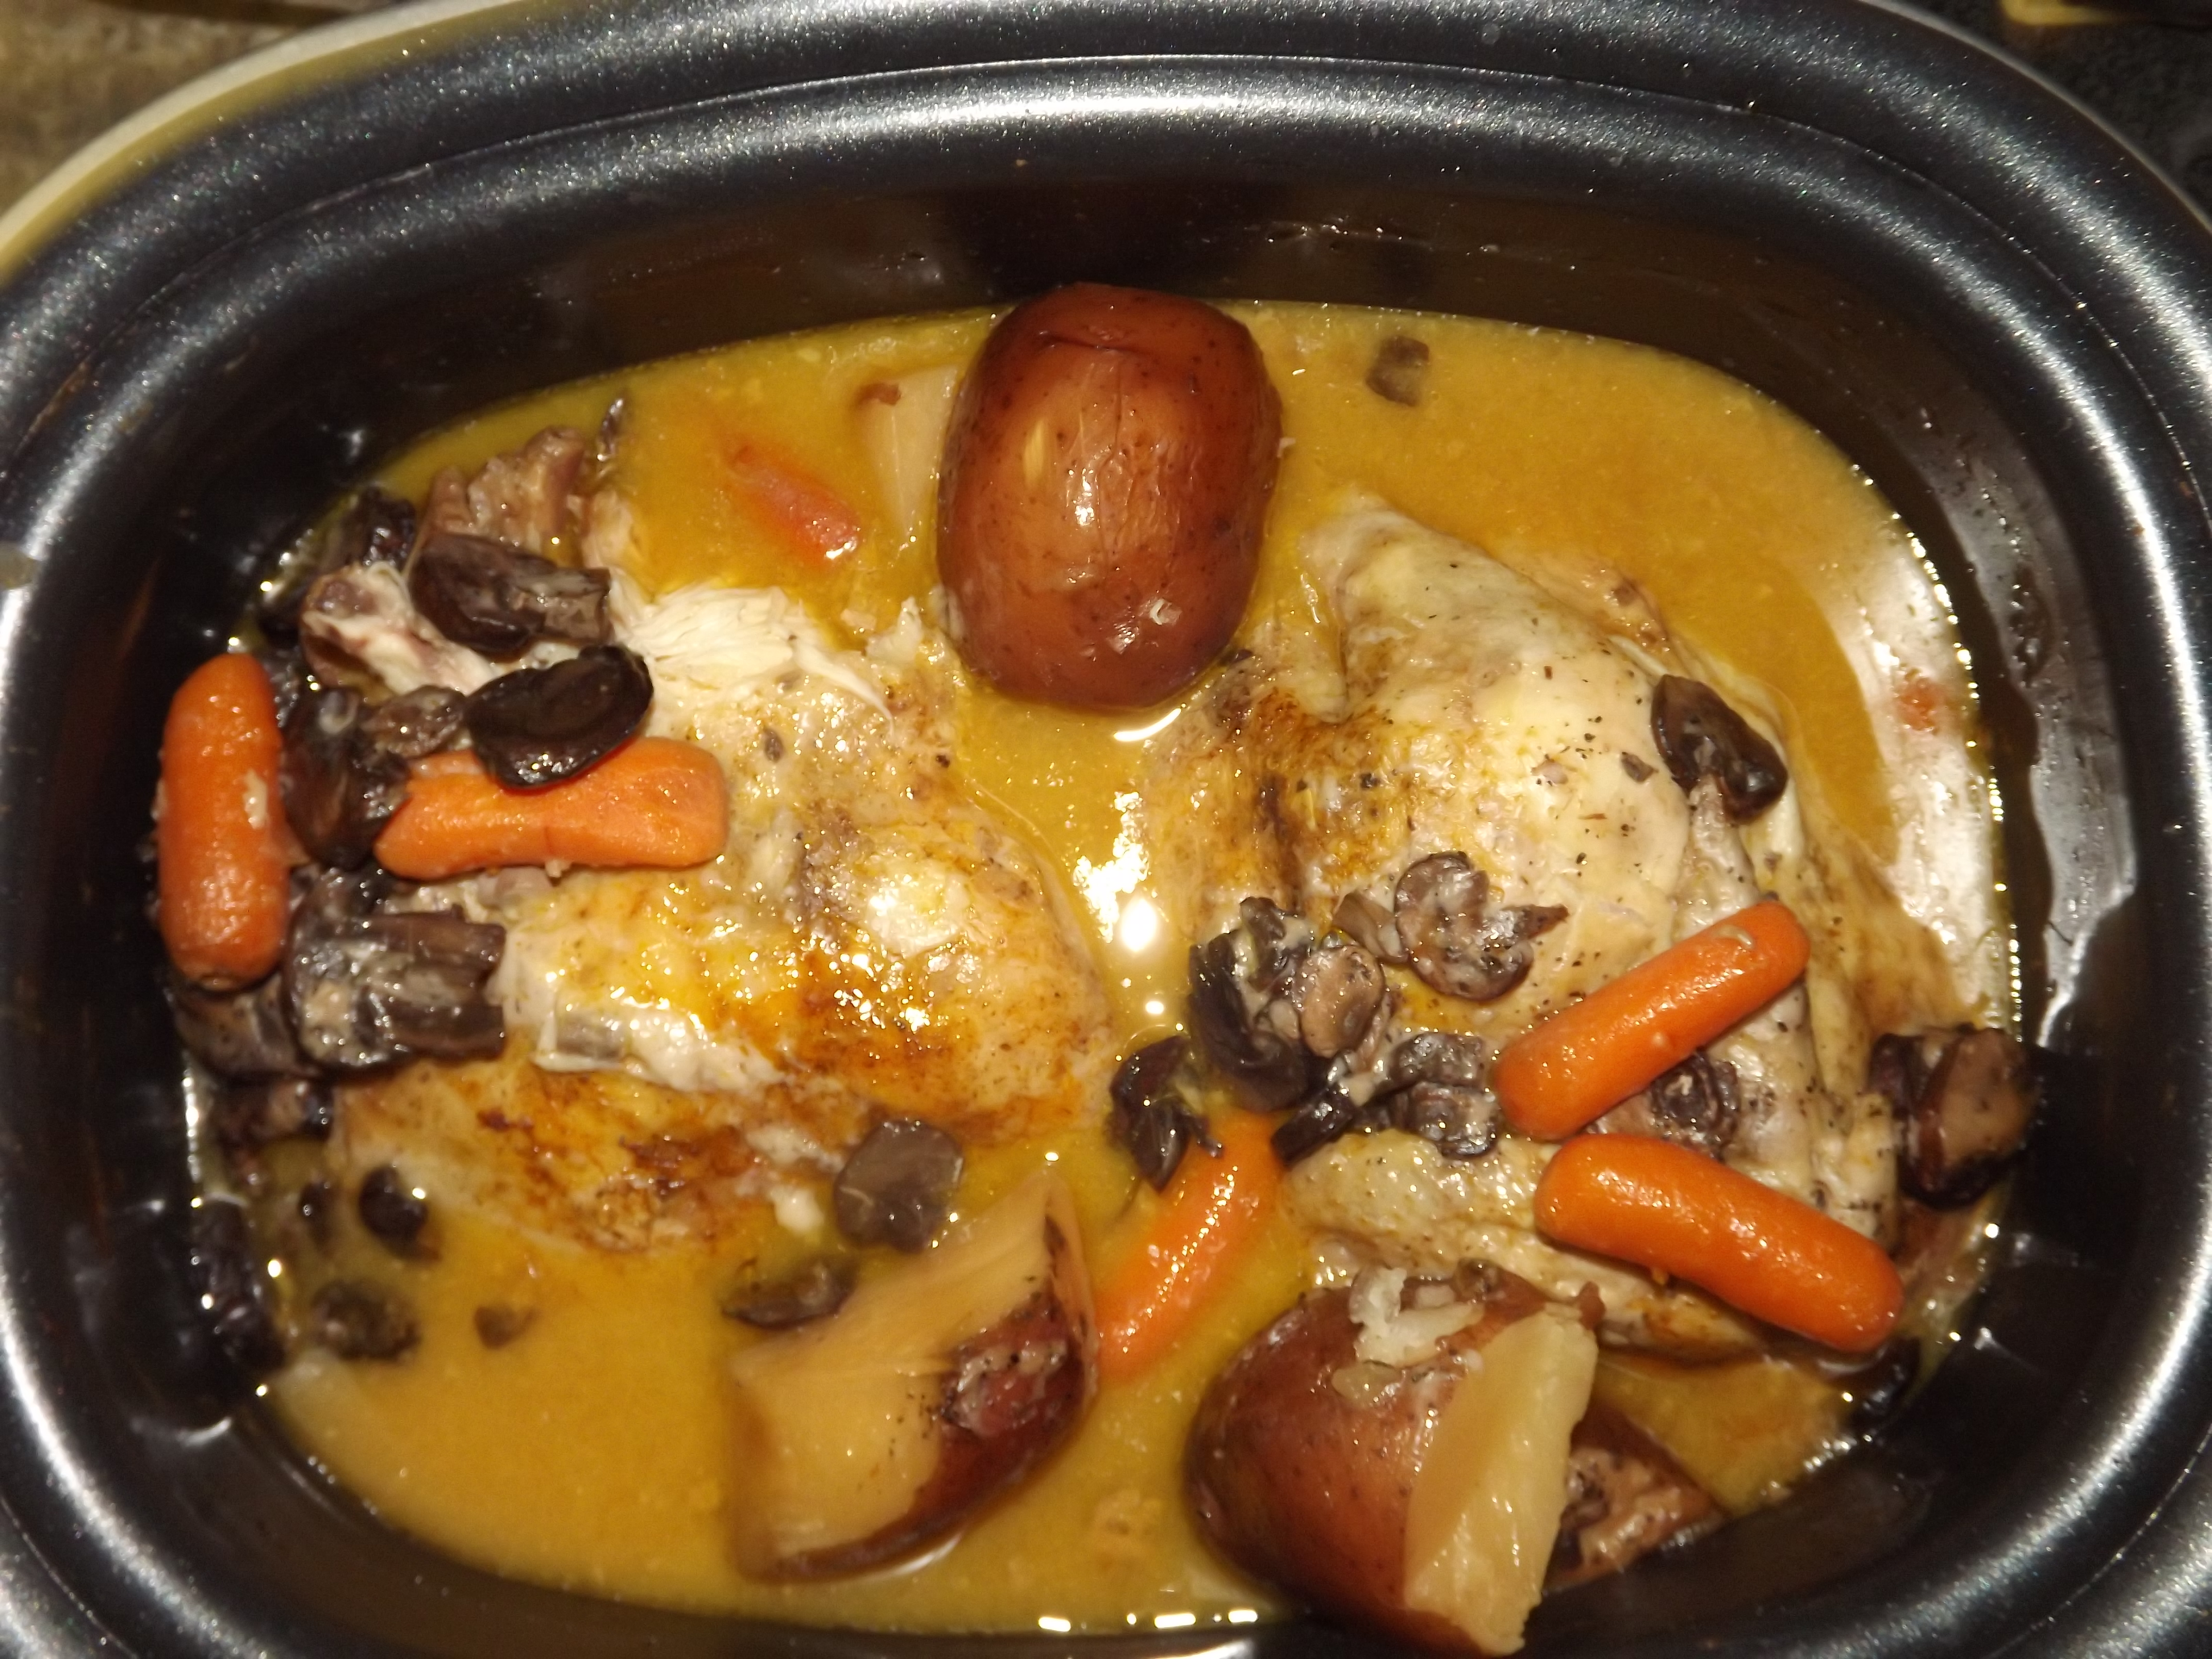 ... Course Main Dish Poultry - Chicken Crock Pot Chicken & Vegetables